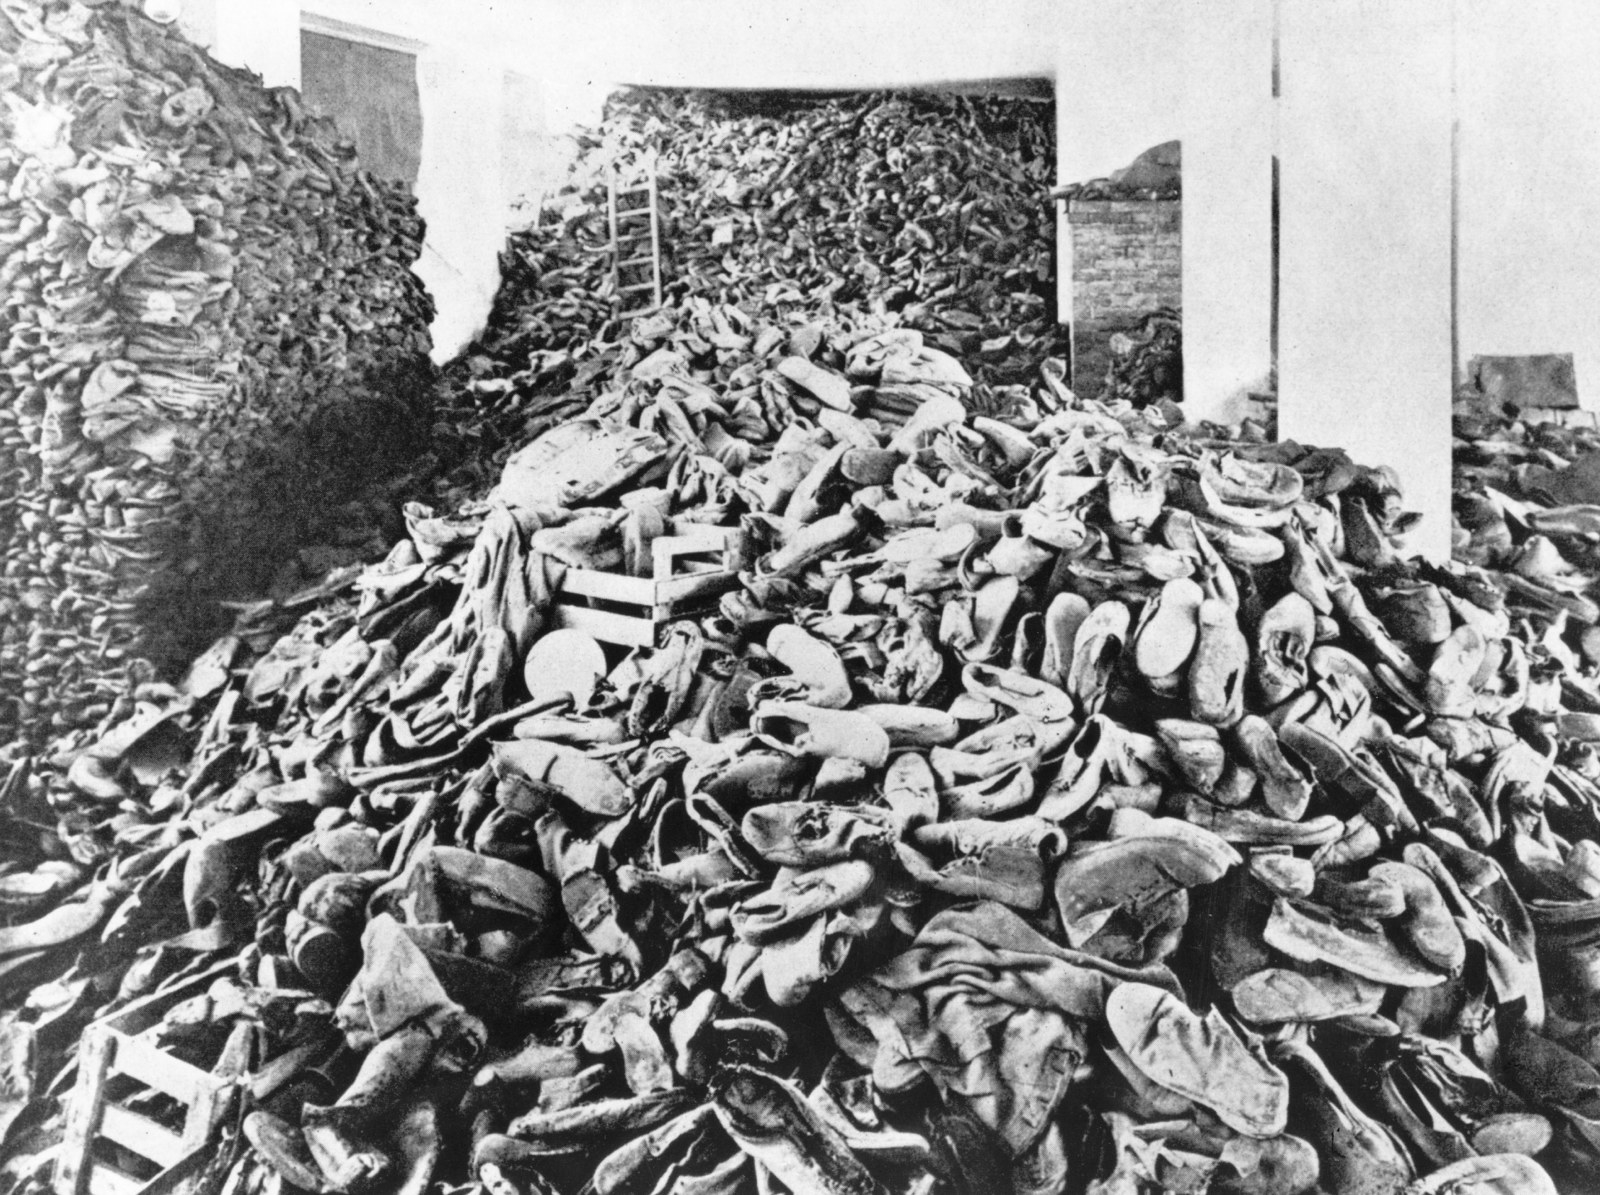 Shoes of murdered prisoners in a Polish concentration camp, likely Treblinka or Belzec.